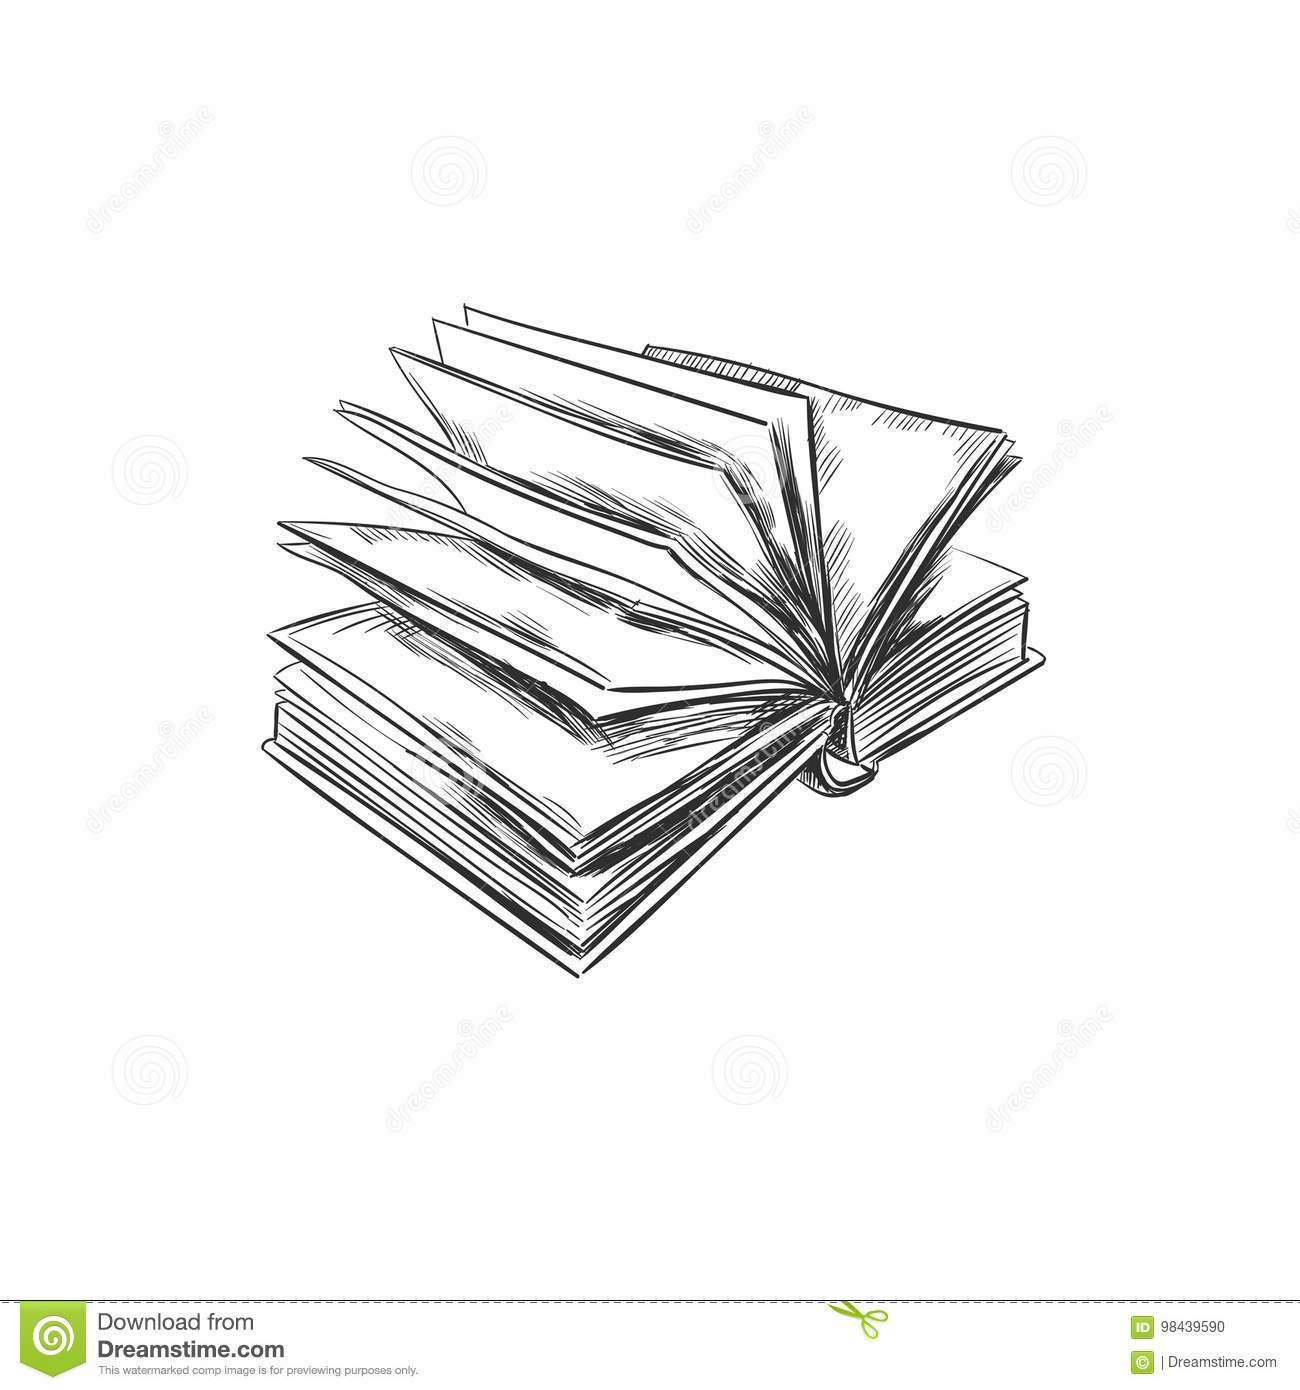 Book. Hand drawn illustration. Sketch style. Icon. Retro. Vintage. Can be used as logo for bookstore or shop, library, educational